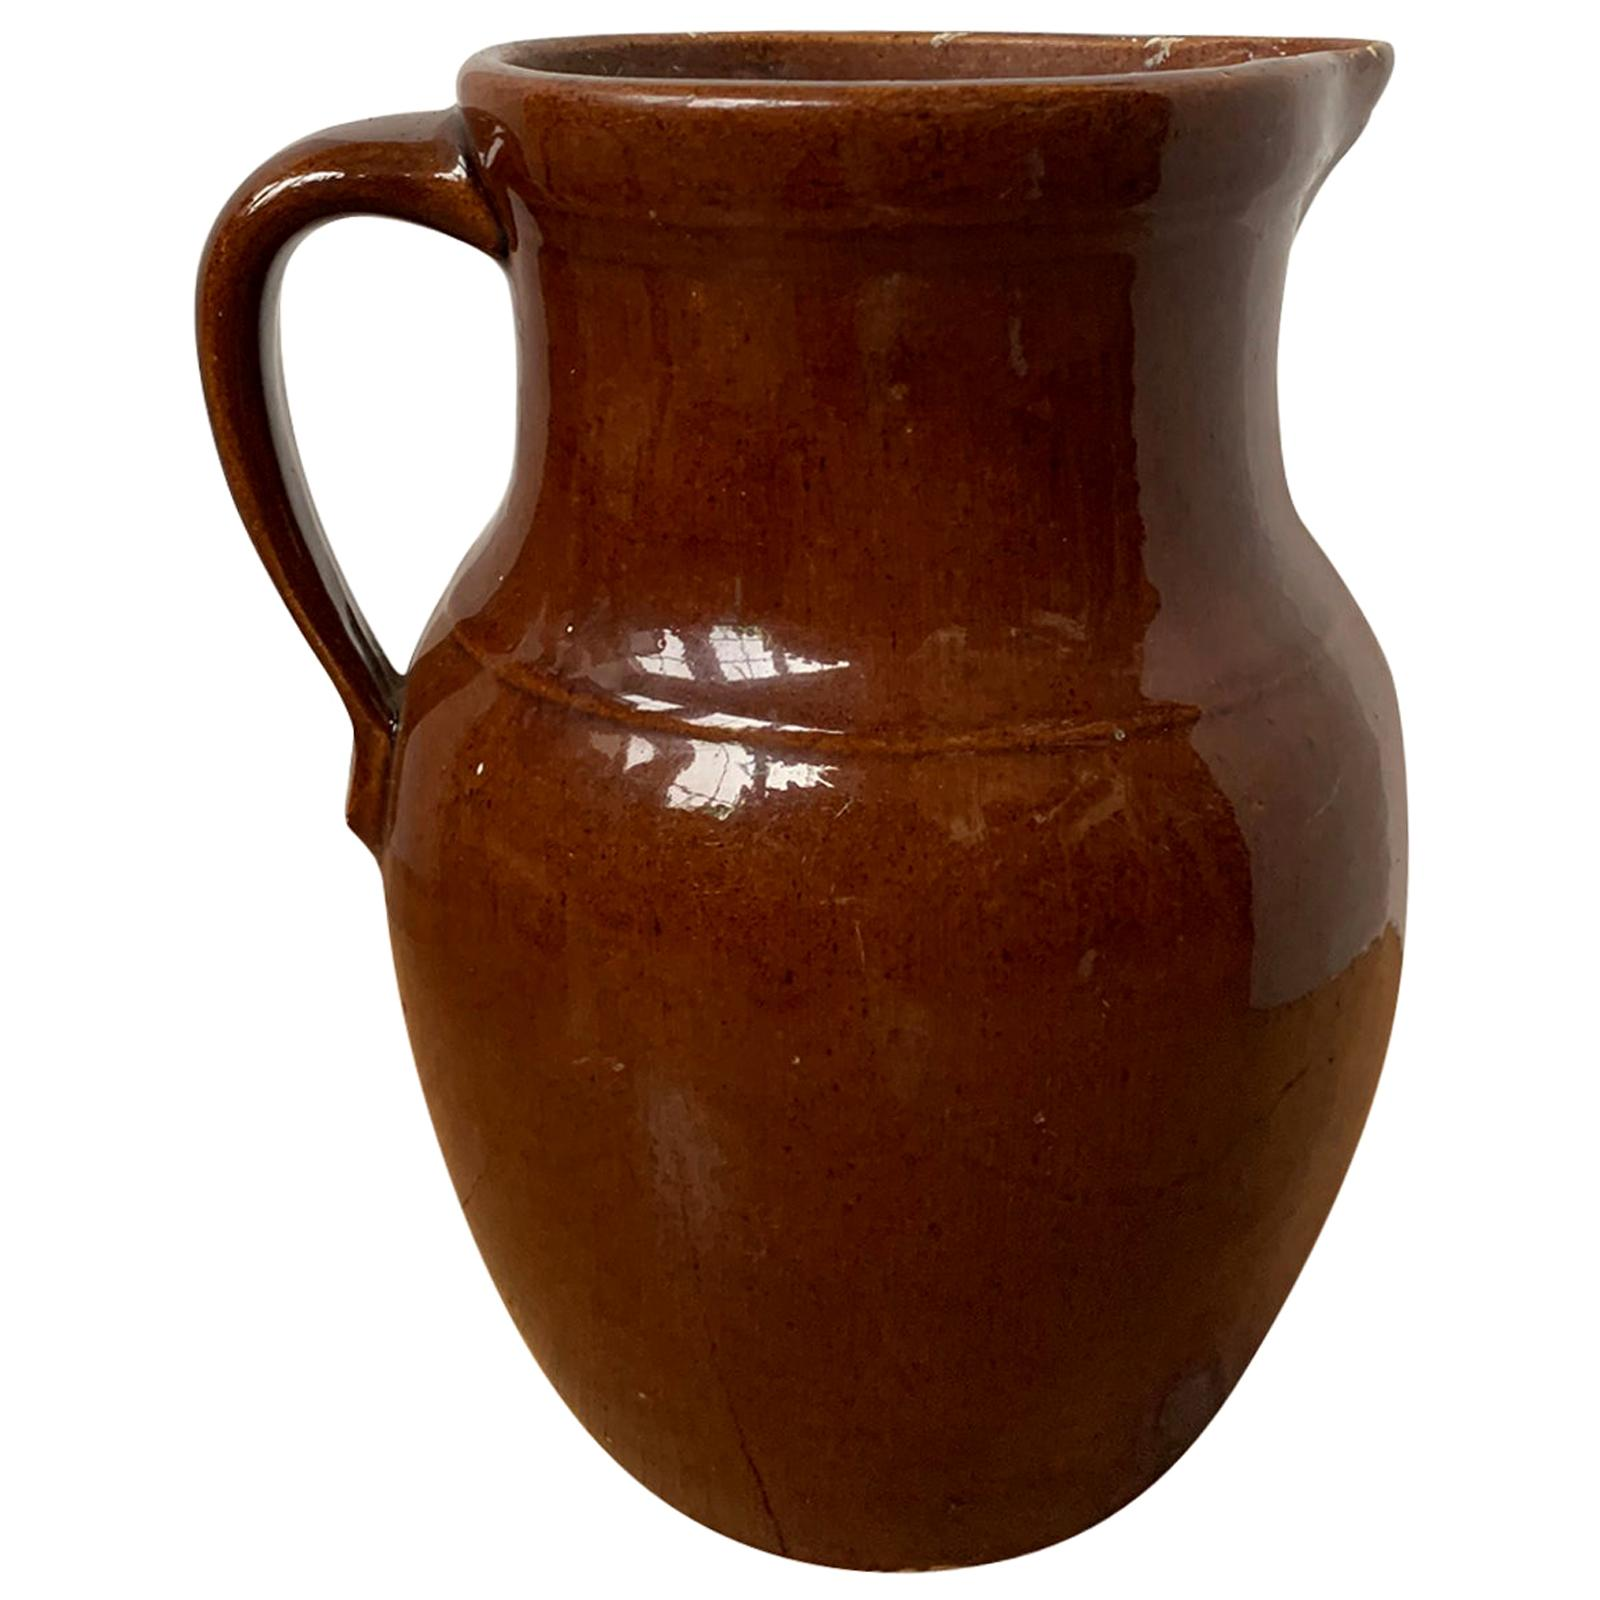 19th Century Glazed Brown Pottery Jug / Pitcher with Handle, Unmarked